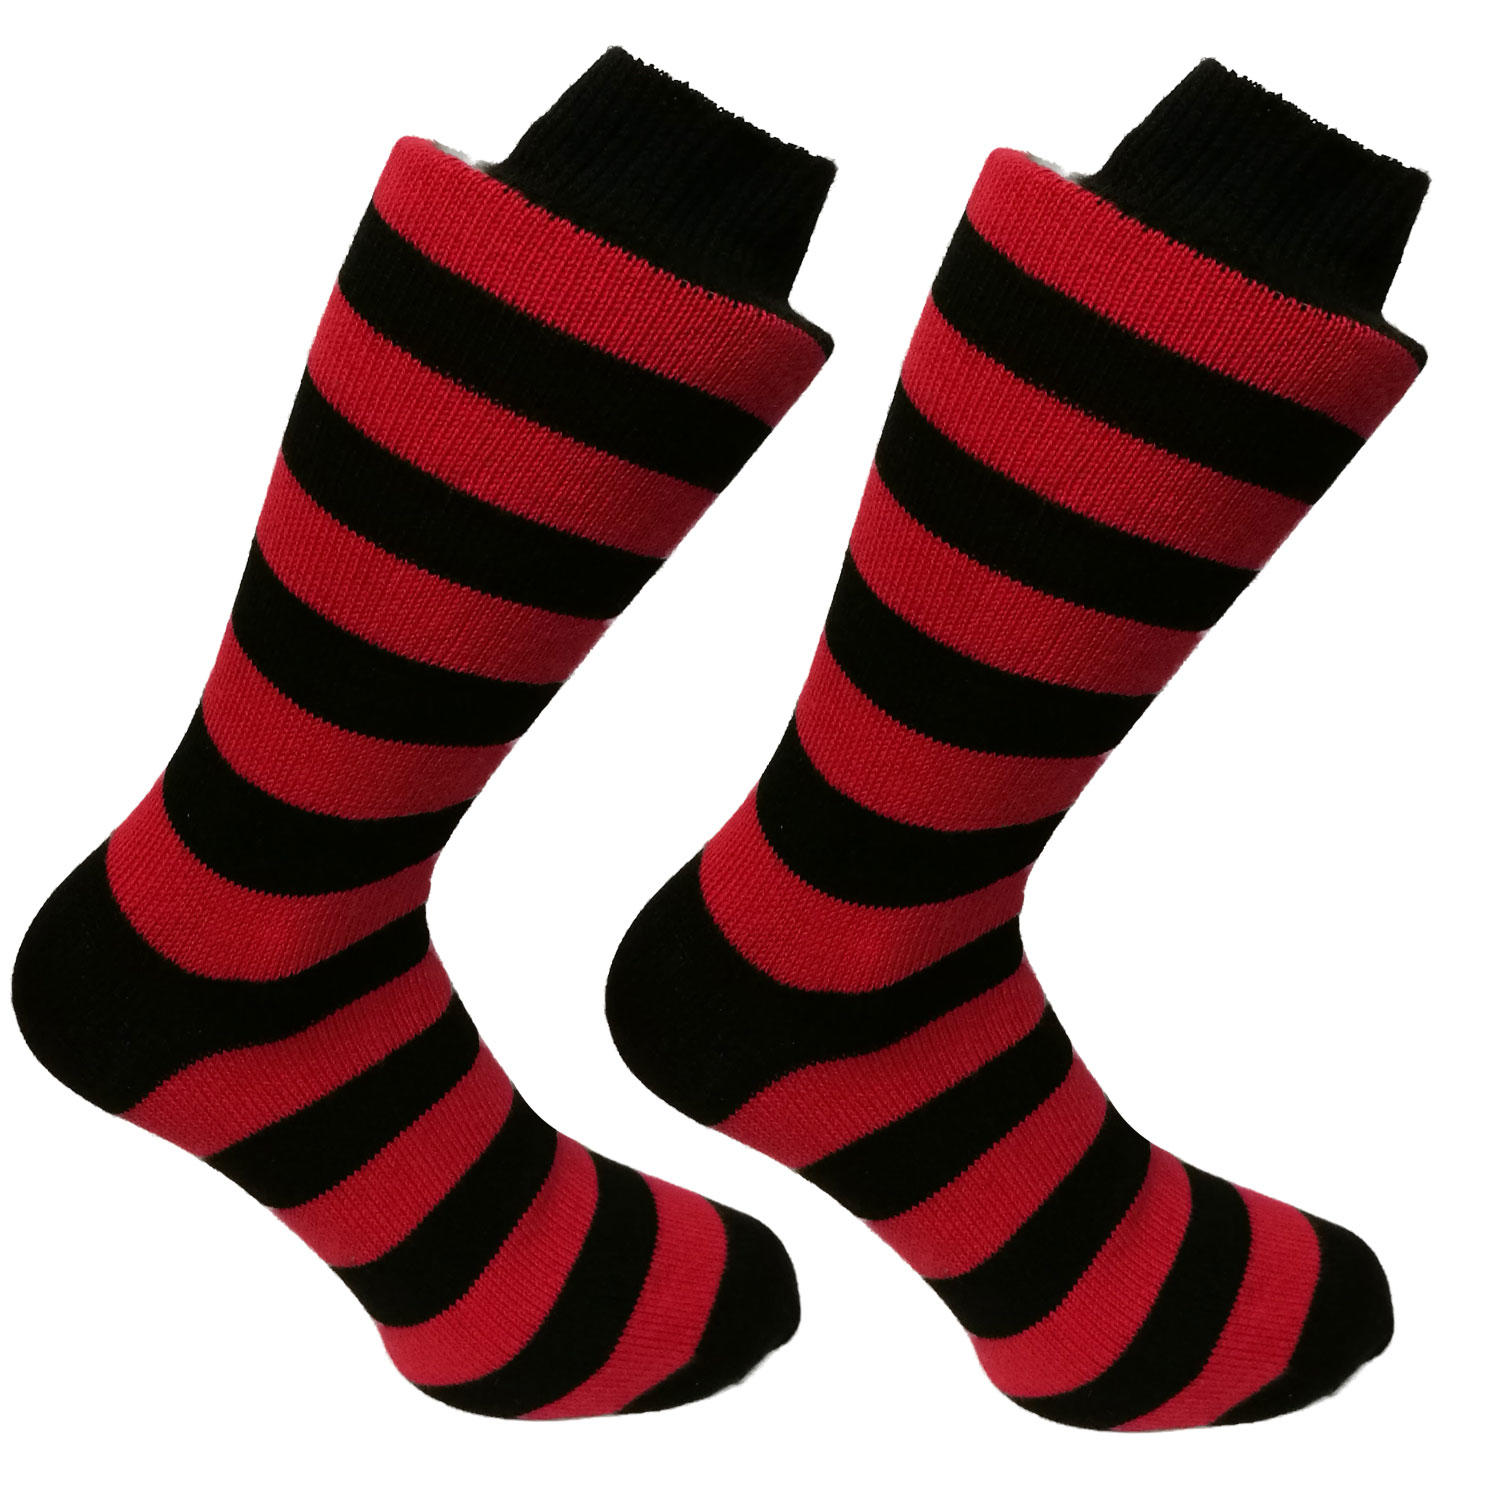 Black and Red Stripy Socks | SOCK CLUB® from Cuffs & Co